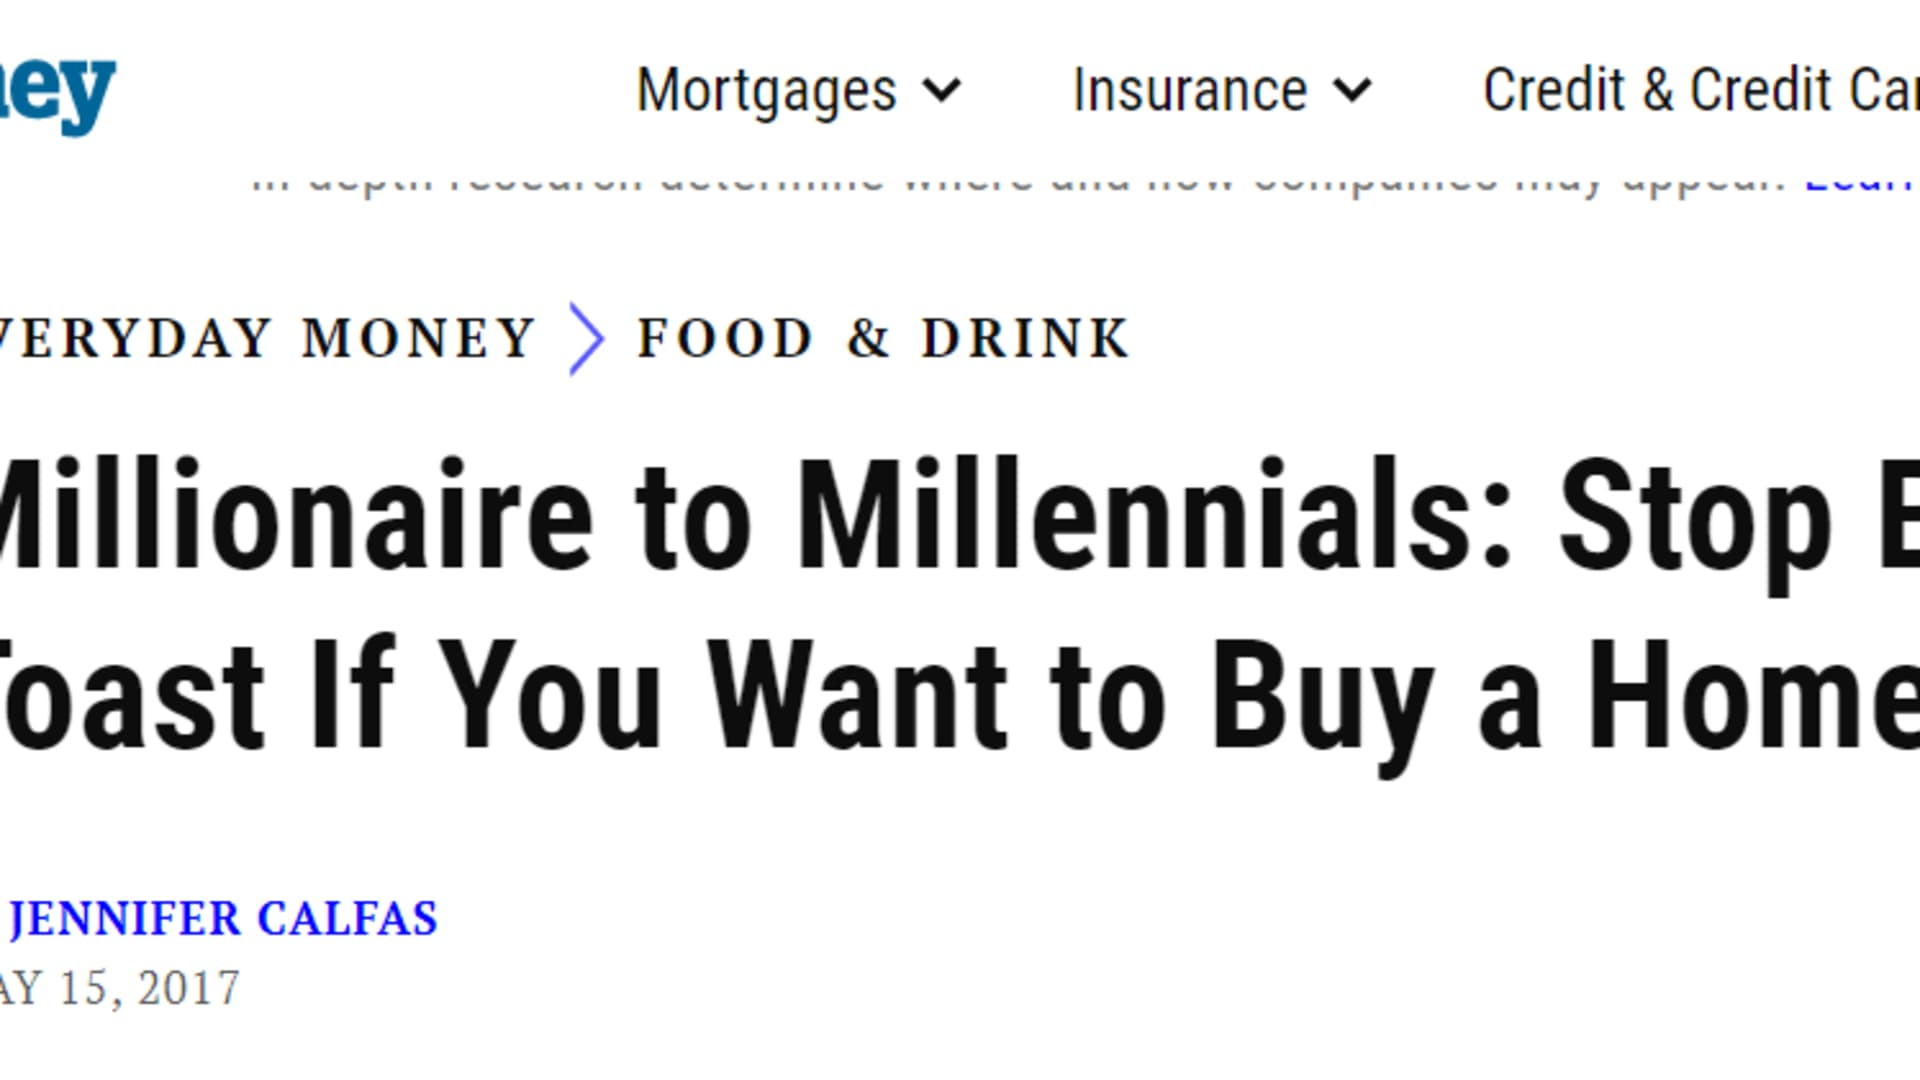 Picture avocado toast-consuming, latte-drinking, yoga mat-toting 20-somethings who live in their parents' basement, always job-hopping and drowning in debt. This trope quickly came to define millennials in many a media narrative.